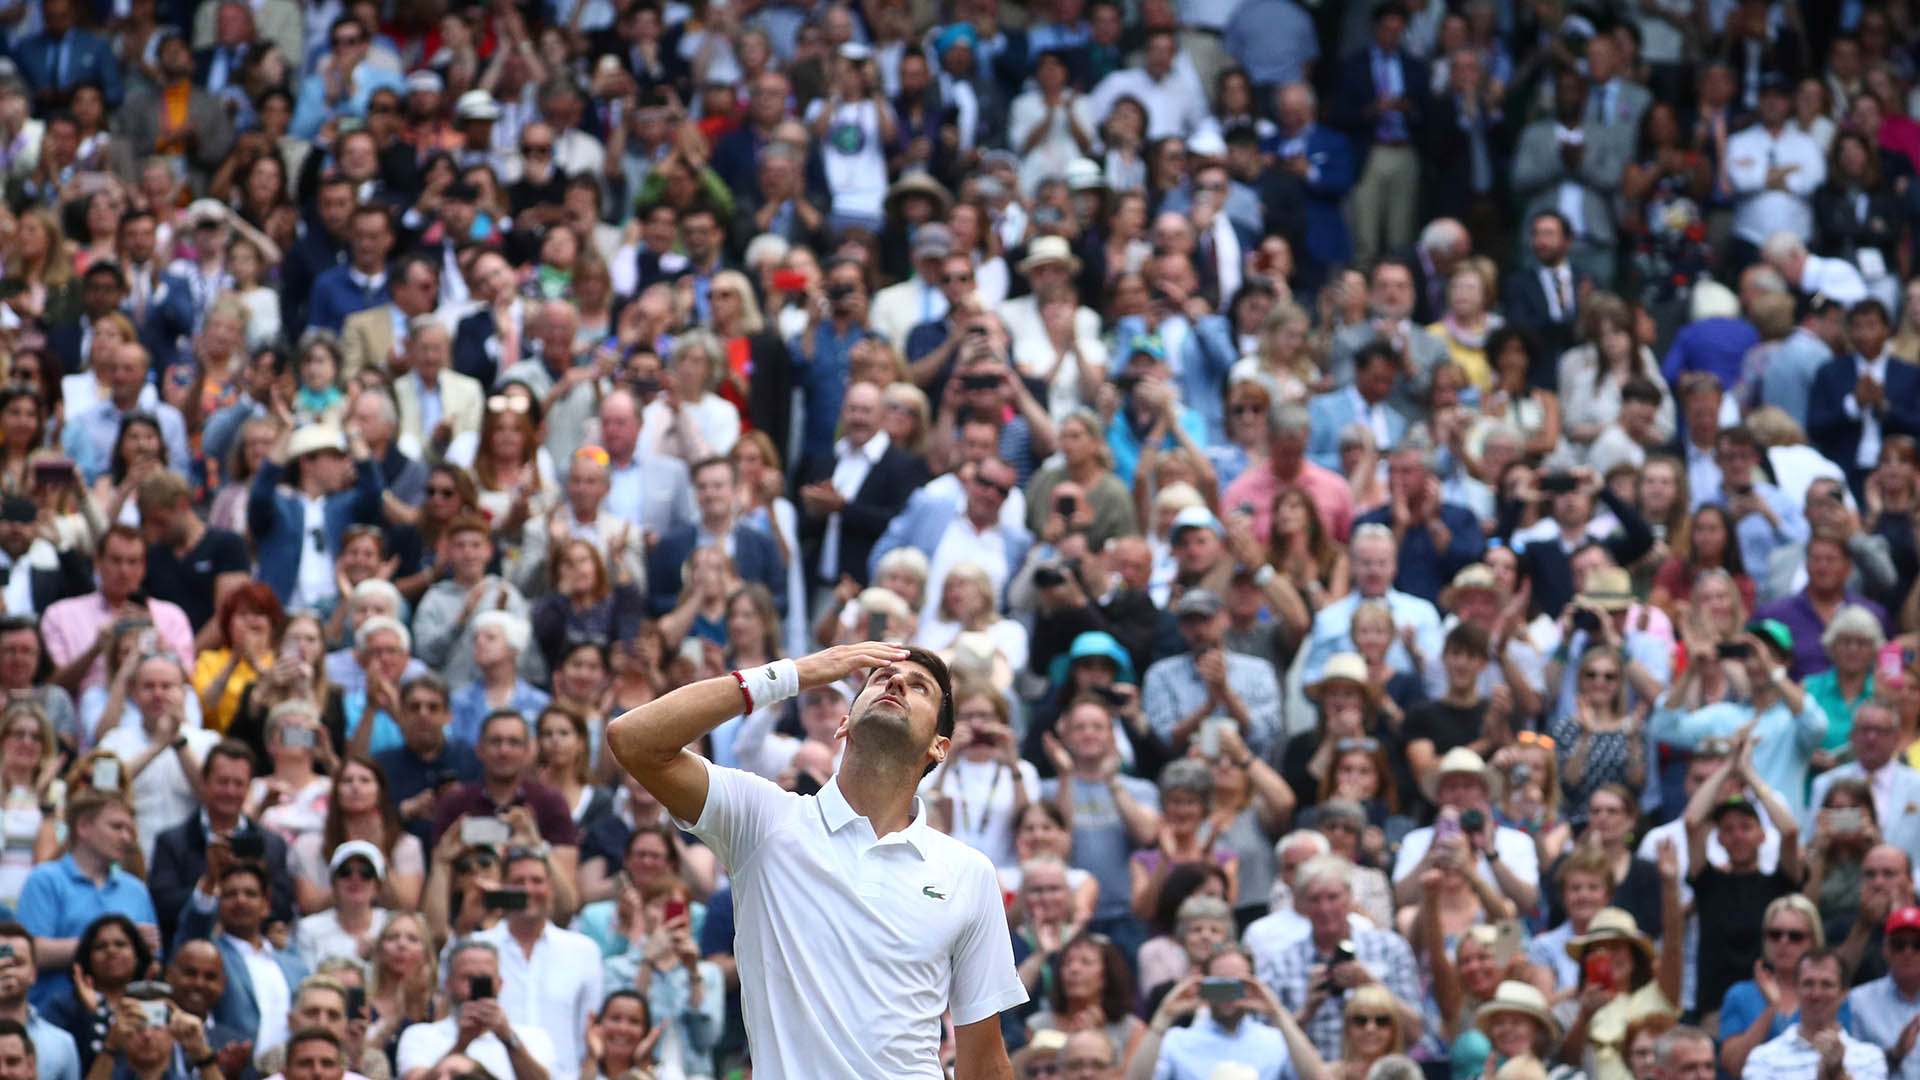 Este es el 16° Grand Slam en la carrera de Nole (REUTERS)